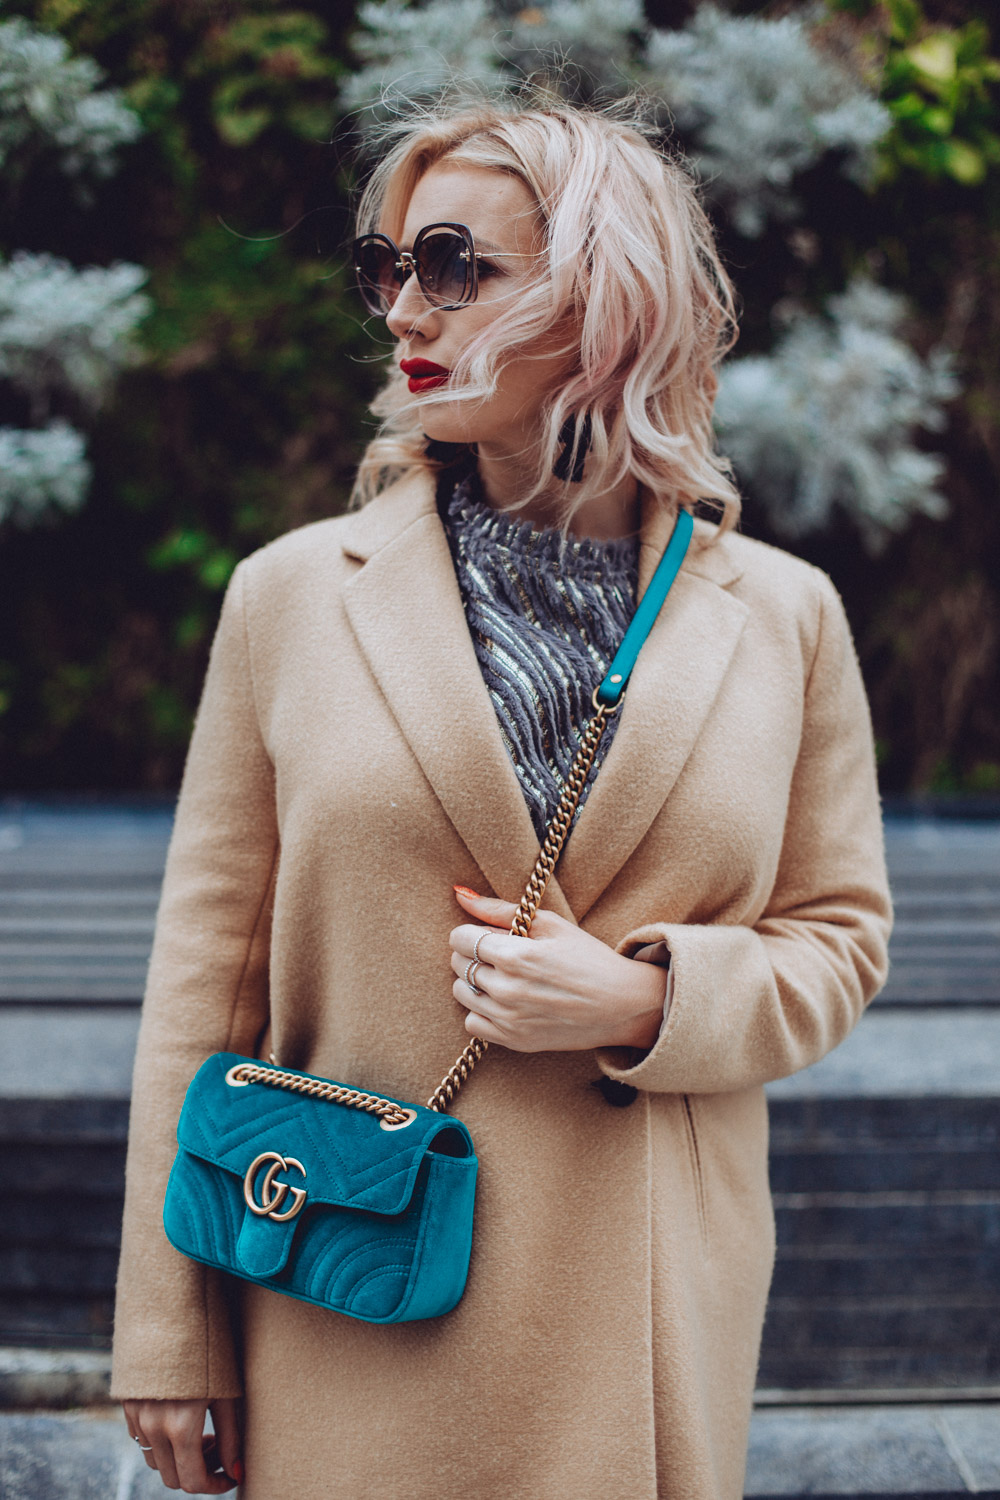 Zara camel coat and Gucci GG Marmont velvet, fashion blogger